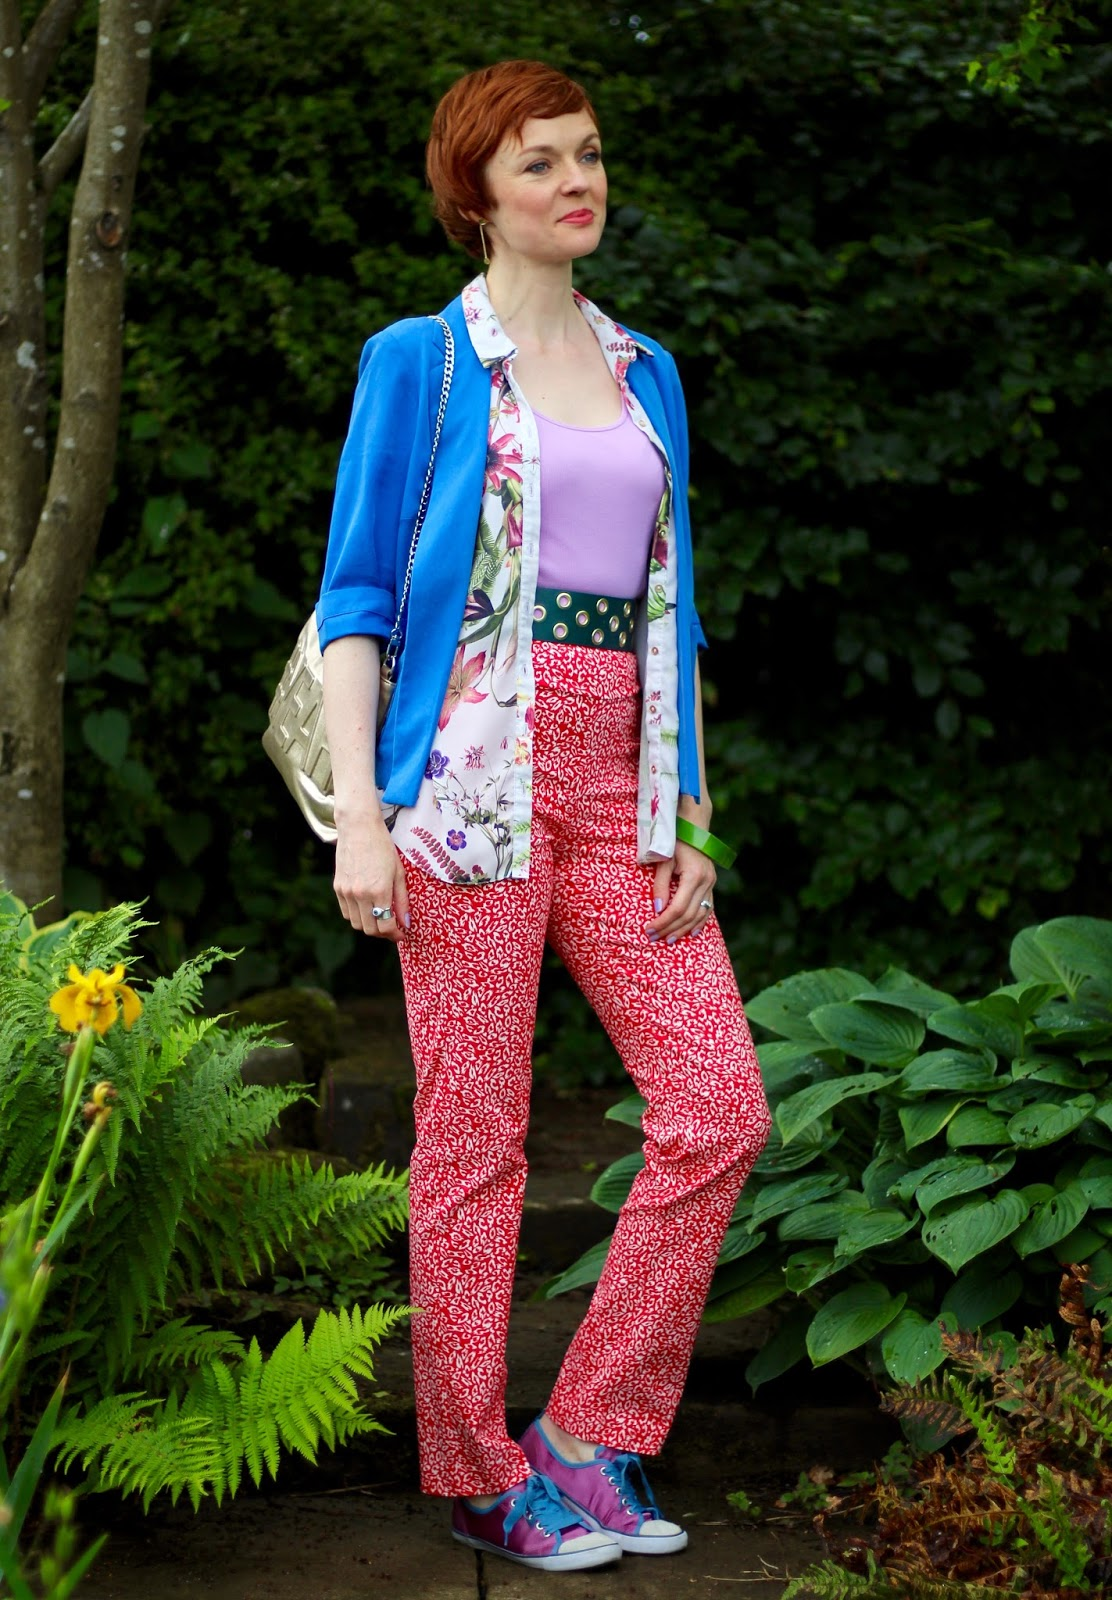 Samantha Blair of Fake Fabulous fashion blog wears two summery prints with a pair of adorable purple sneakers.